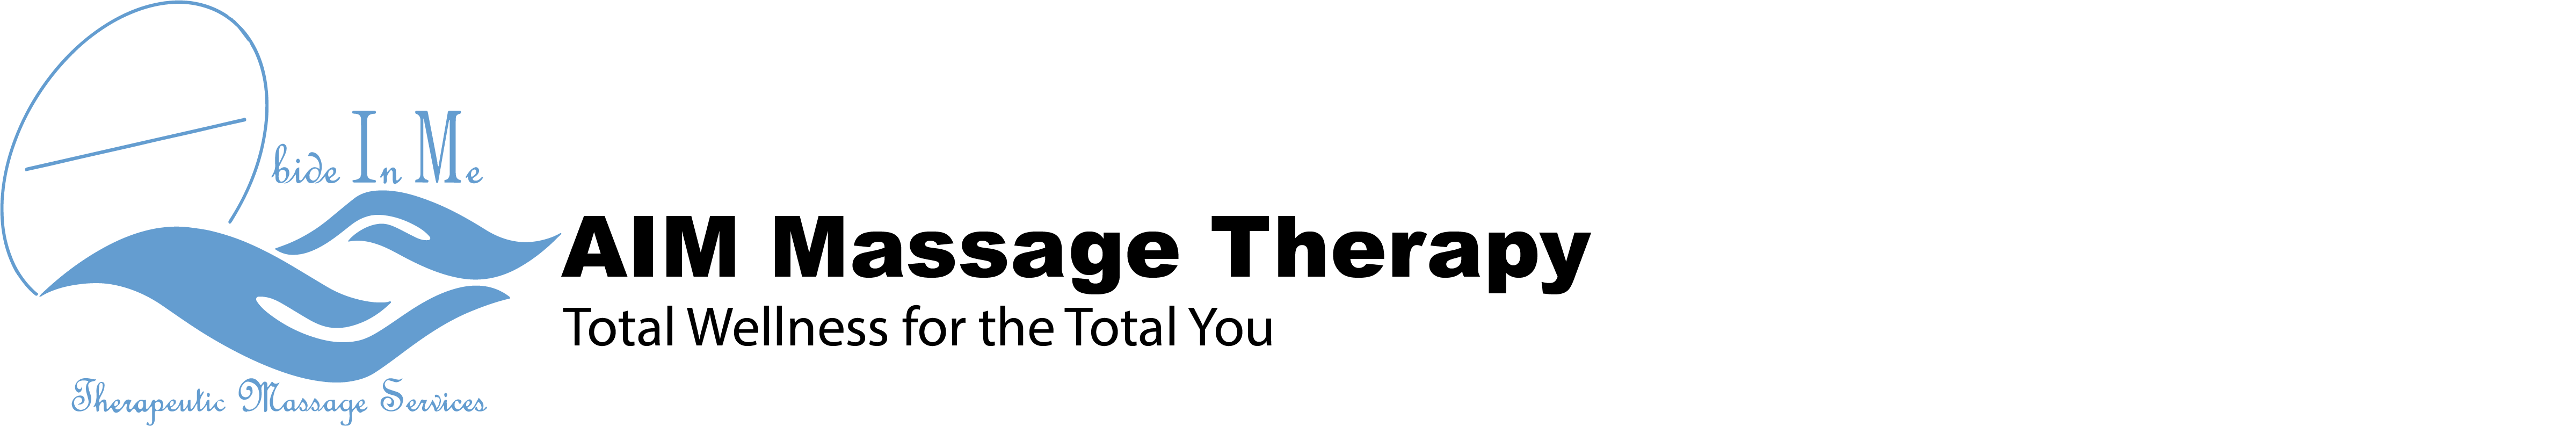 AIM Massage Therapy